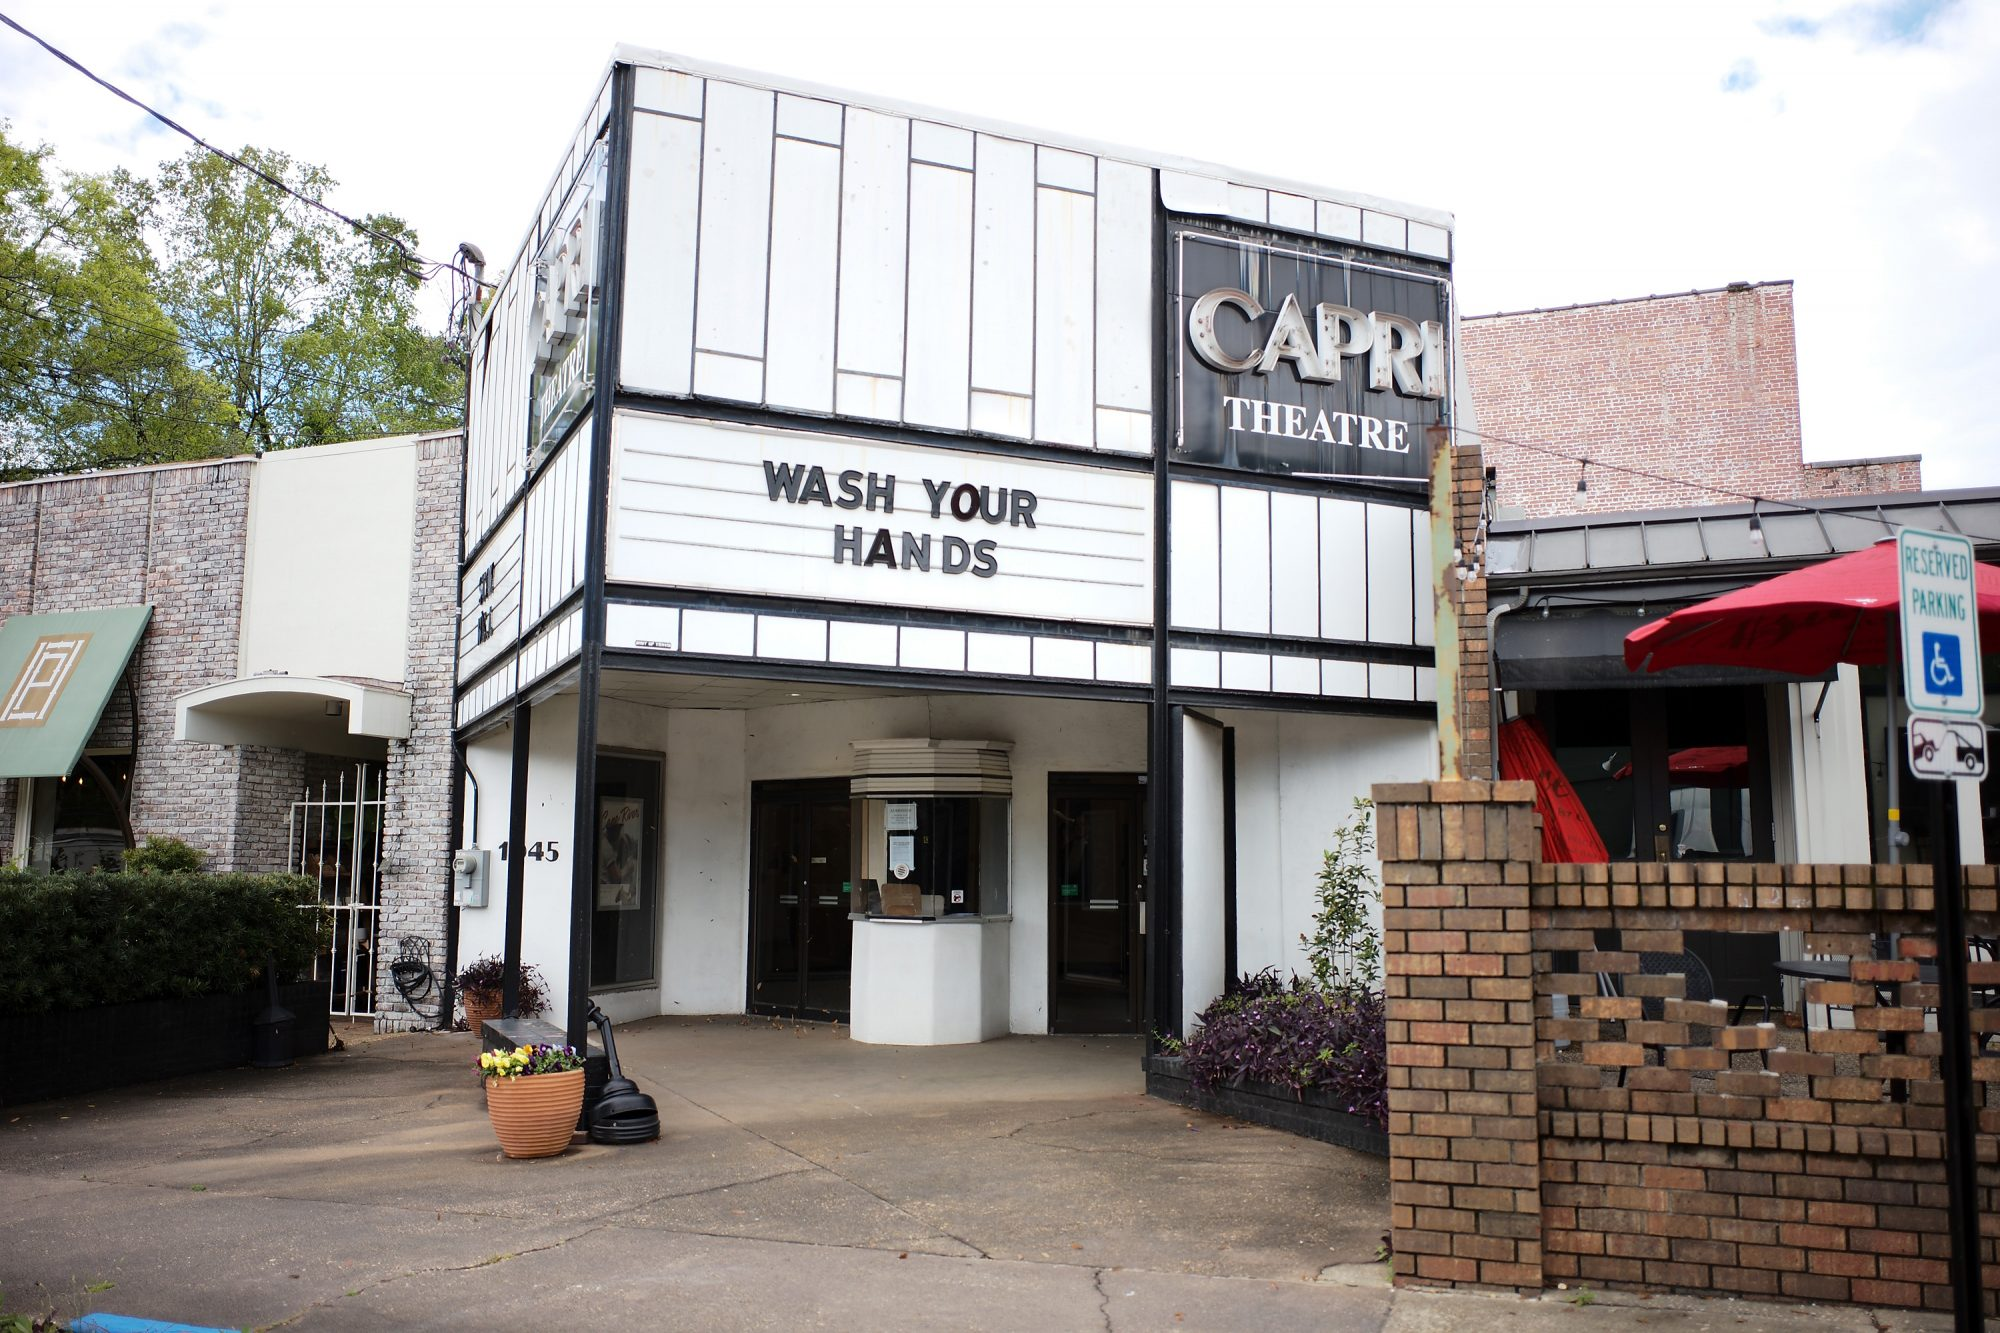 The Capri Theatre in Old Cloverdale